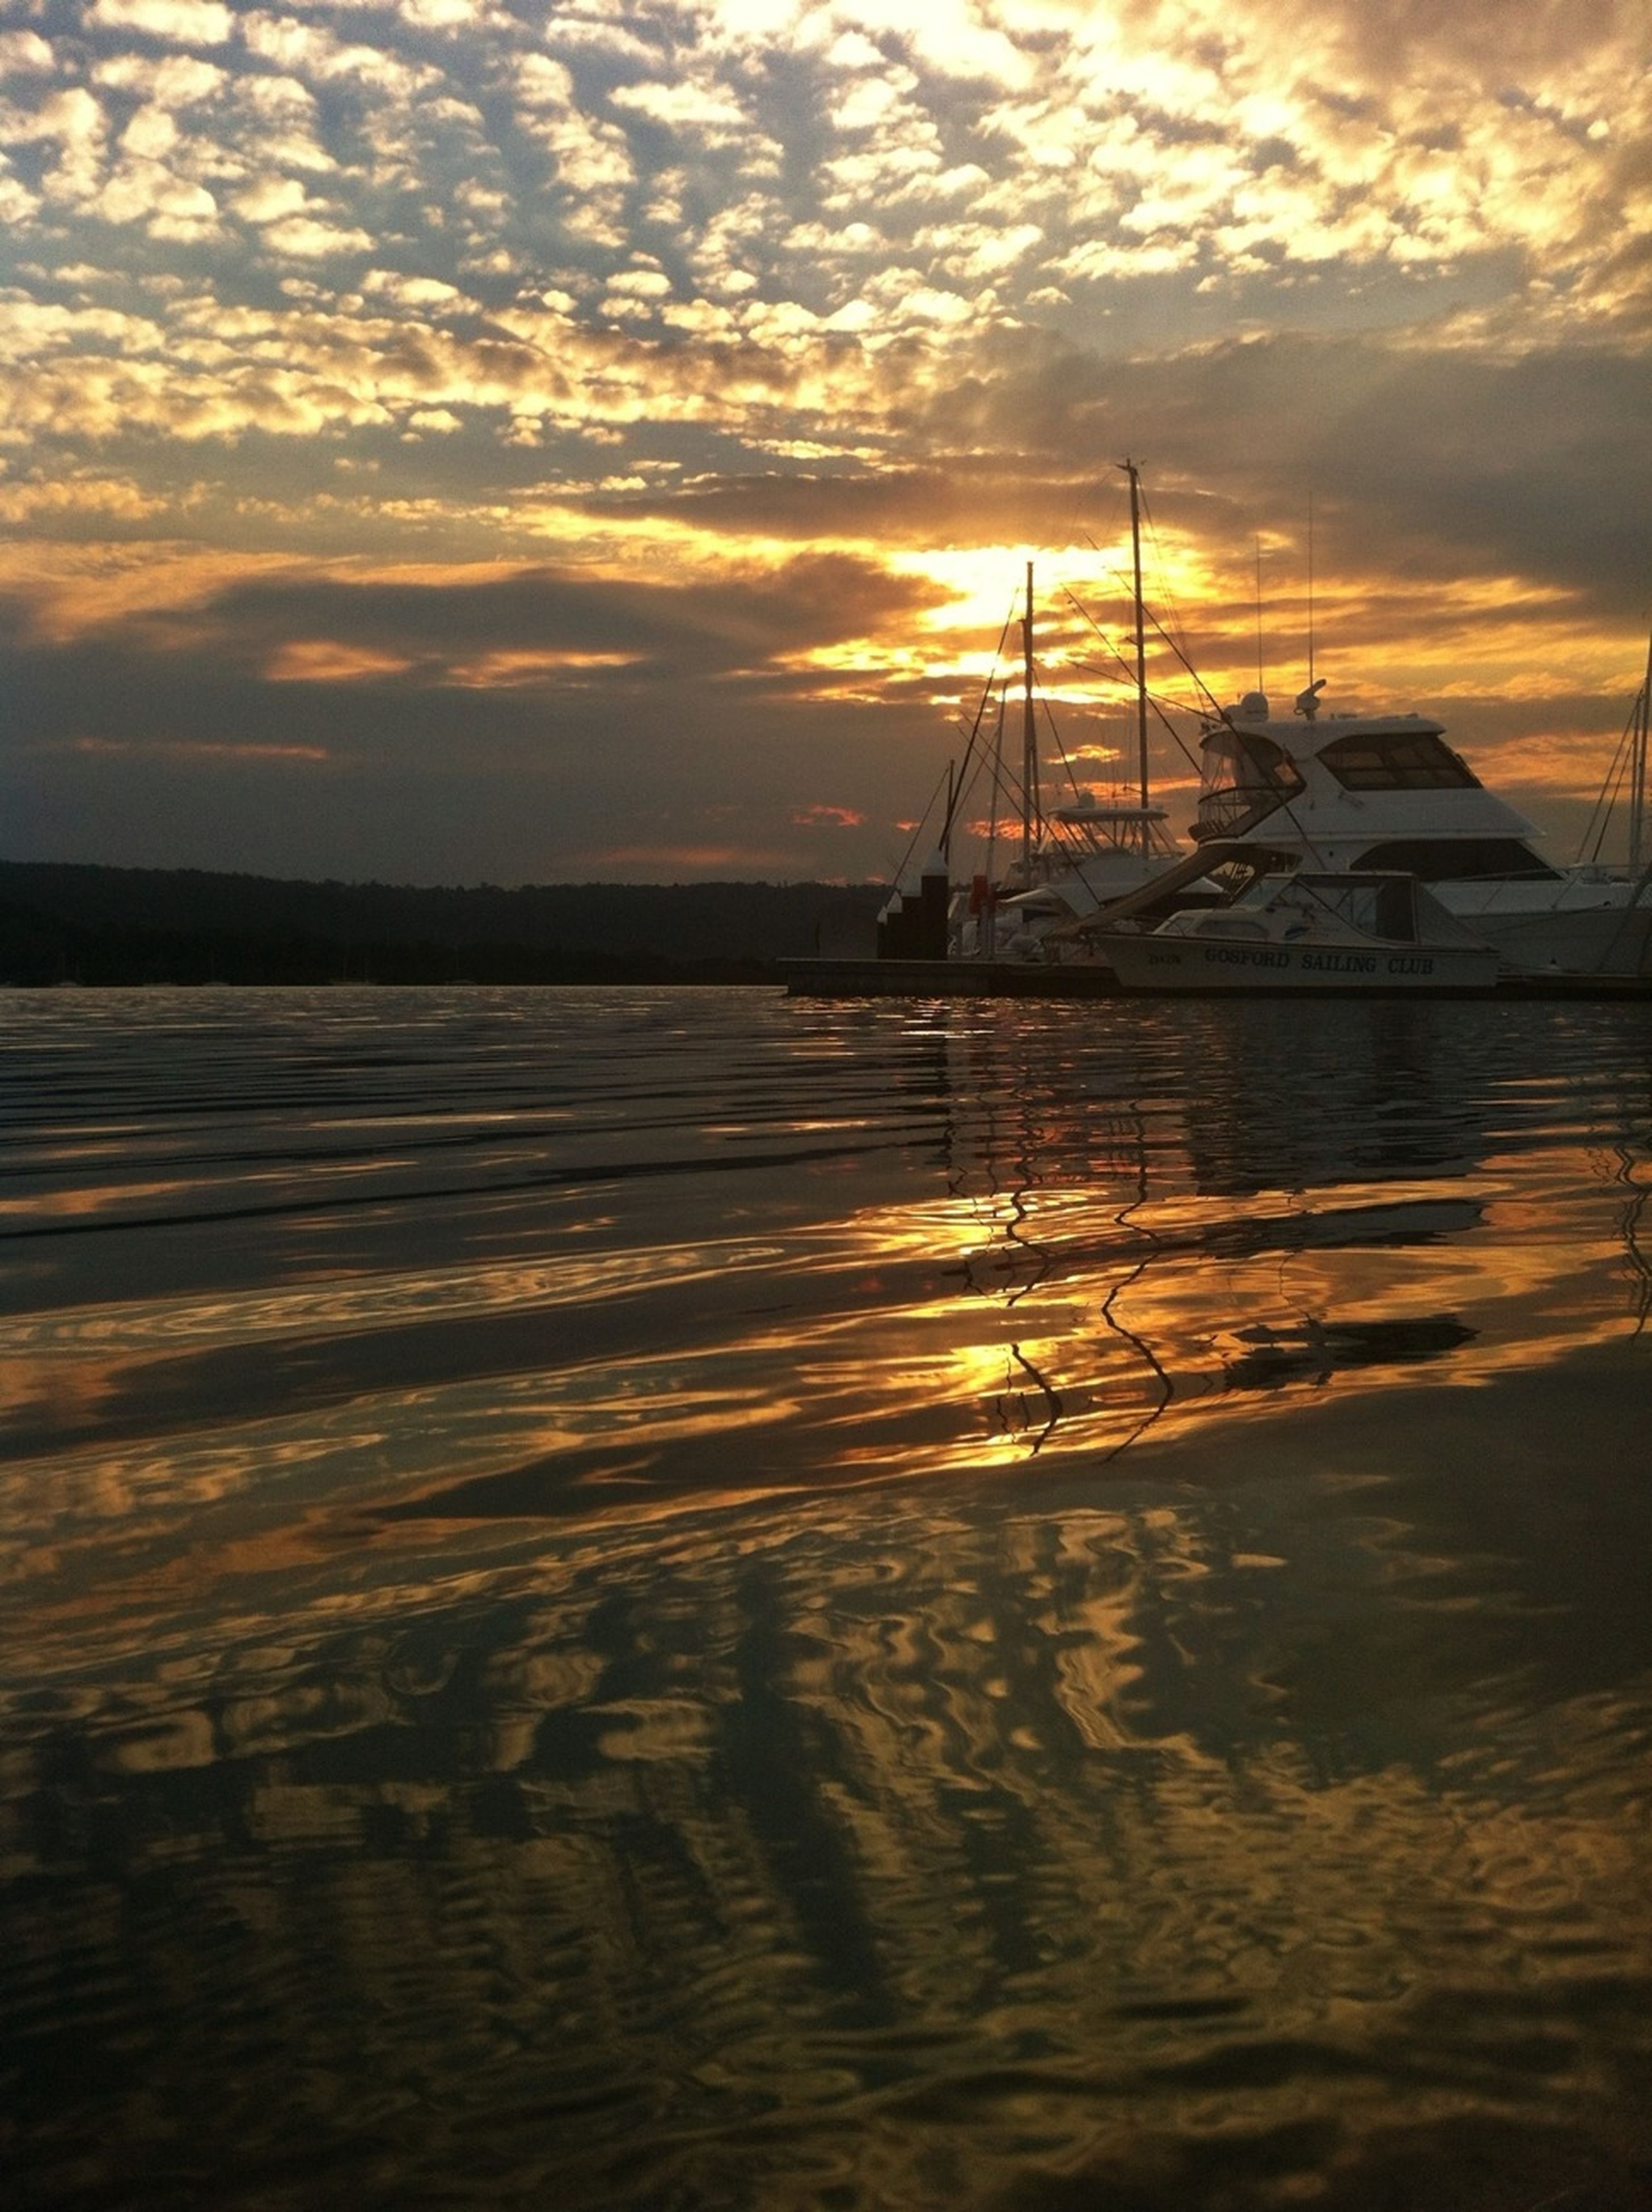 sunset, water, orange color, sky, sea, scenics, silhouette, beauty in nature, reflection, sun, waterfront, cloud - sky, tranquil scene, tranquility, nature, idyllic, nautical vessel, transportation, built structure, outdoors